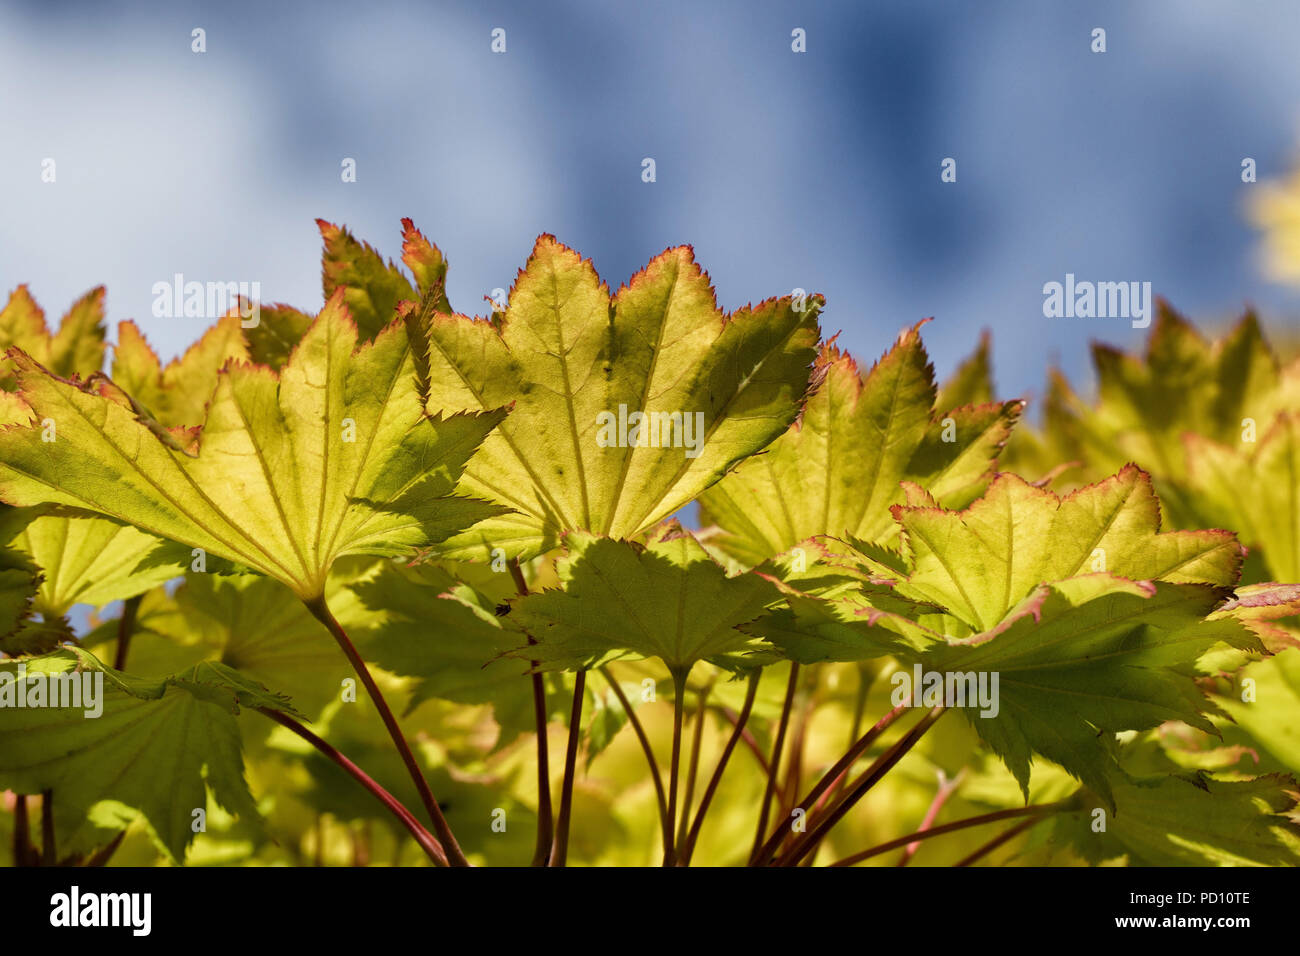 Green and yellow Acer leaves with blue sky and white clouds in the background. - Stock Image